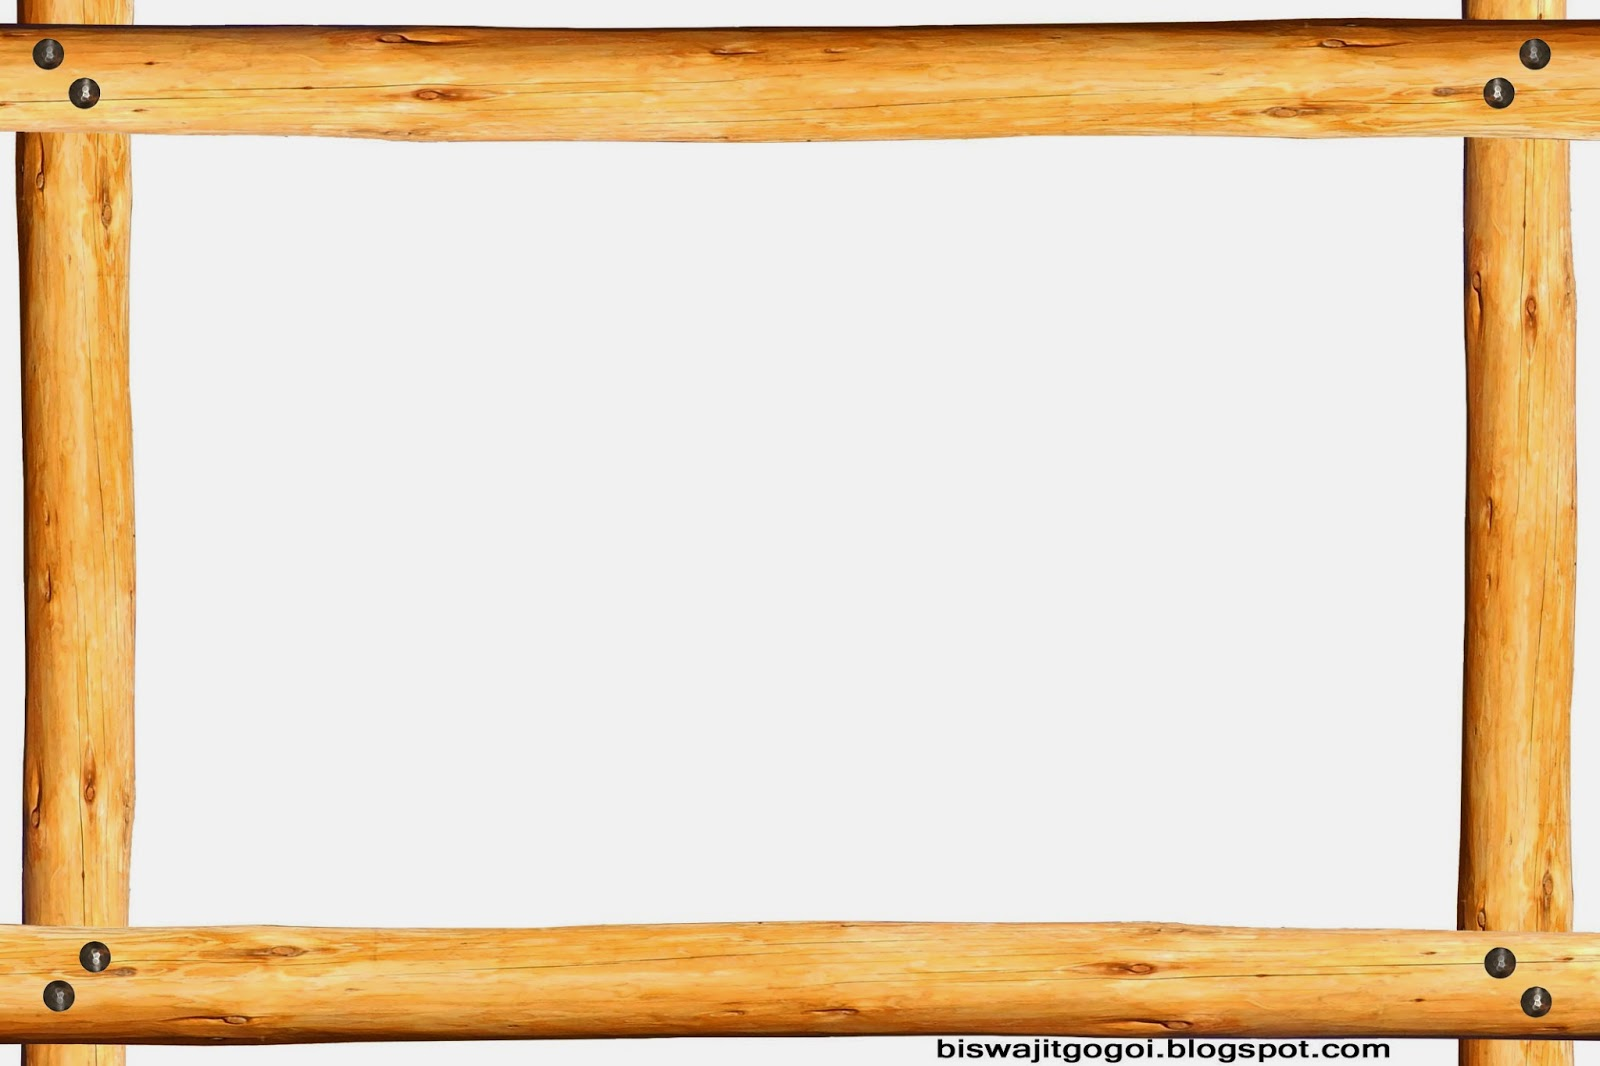 Wooden border clipart free svg black and white stock Free Log Cliparts Border, Download Free Clip Art, Free Clip Art on ... svg black and white stock